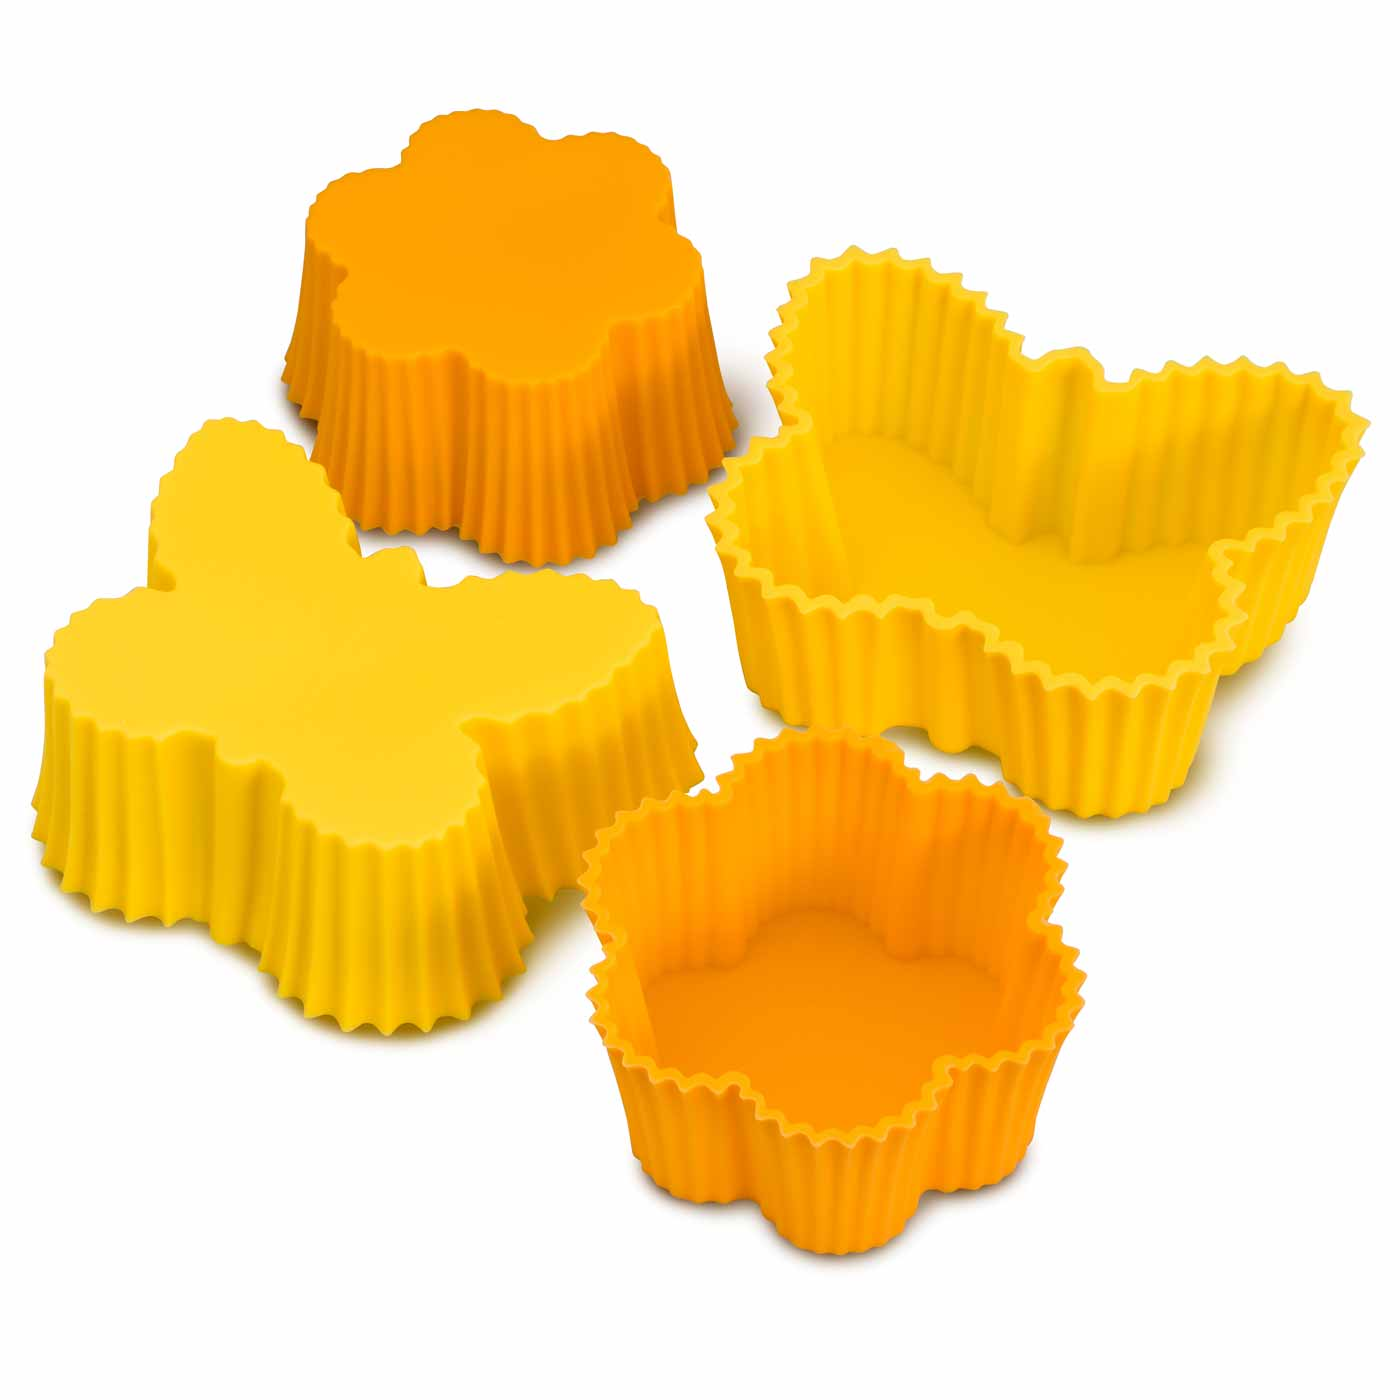 Silicone cupcake moulds \ flowers and butterflies\   sc 1 st  Schopper & Children\u0027s silicone cupcake moulds | Schopper